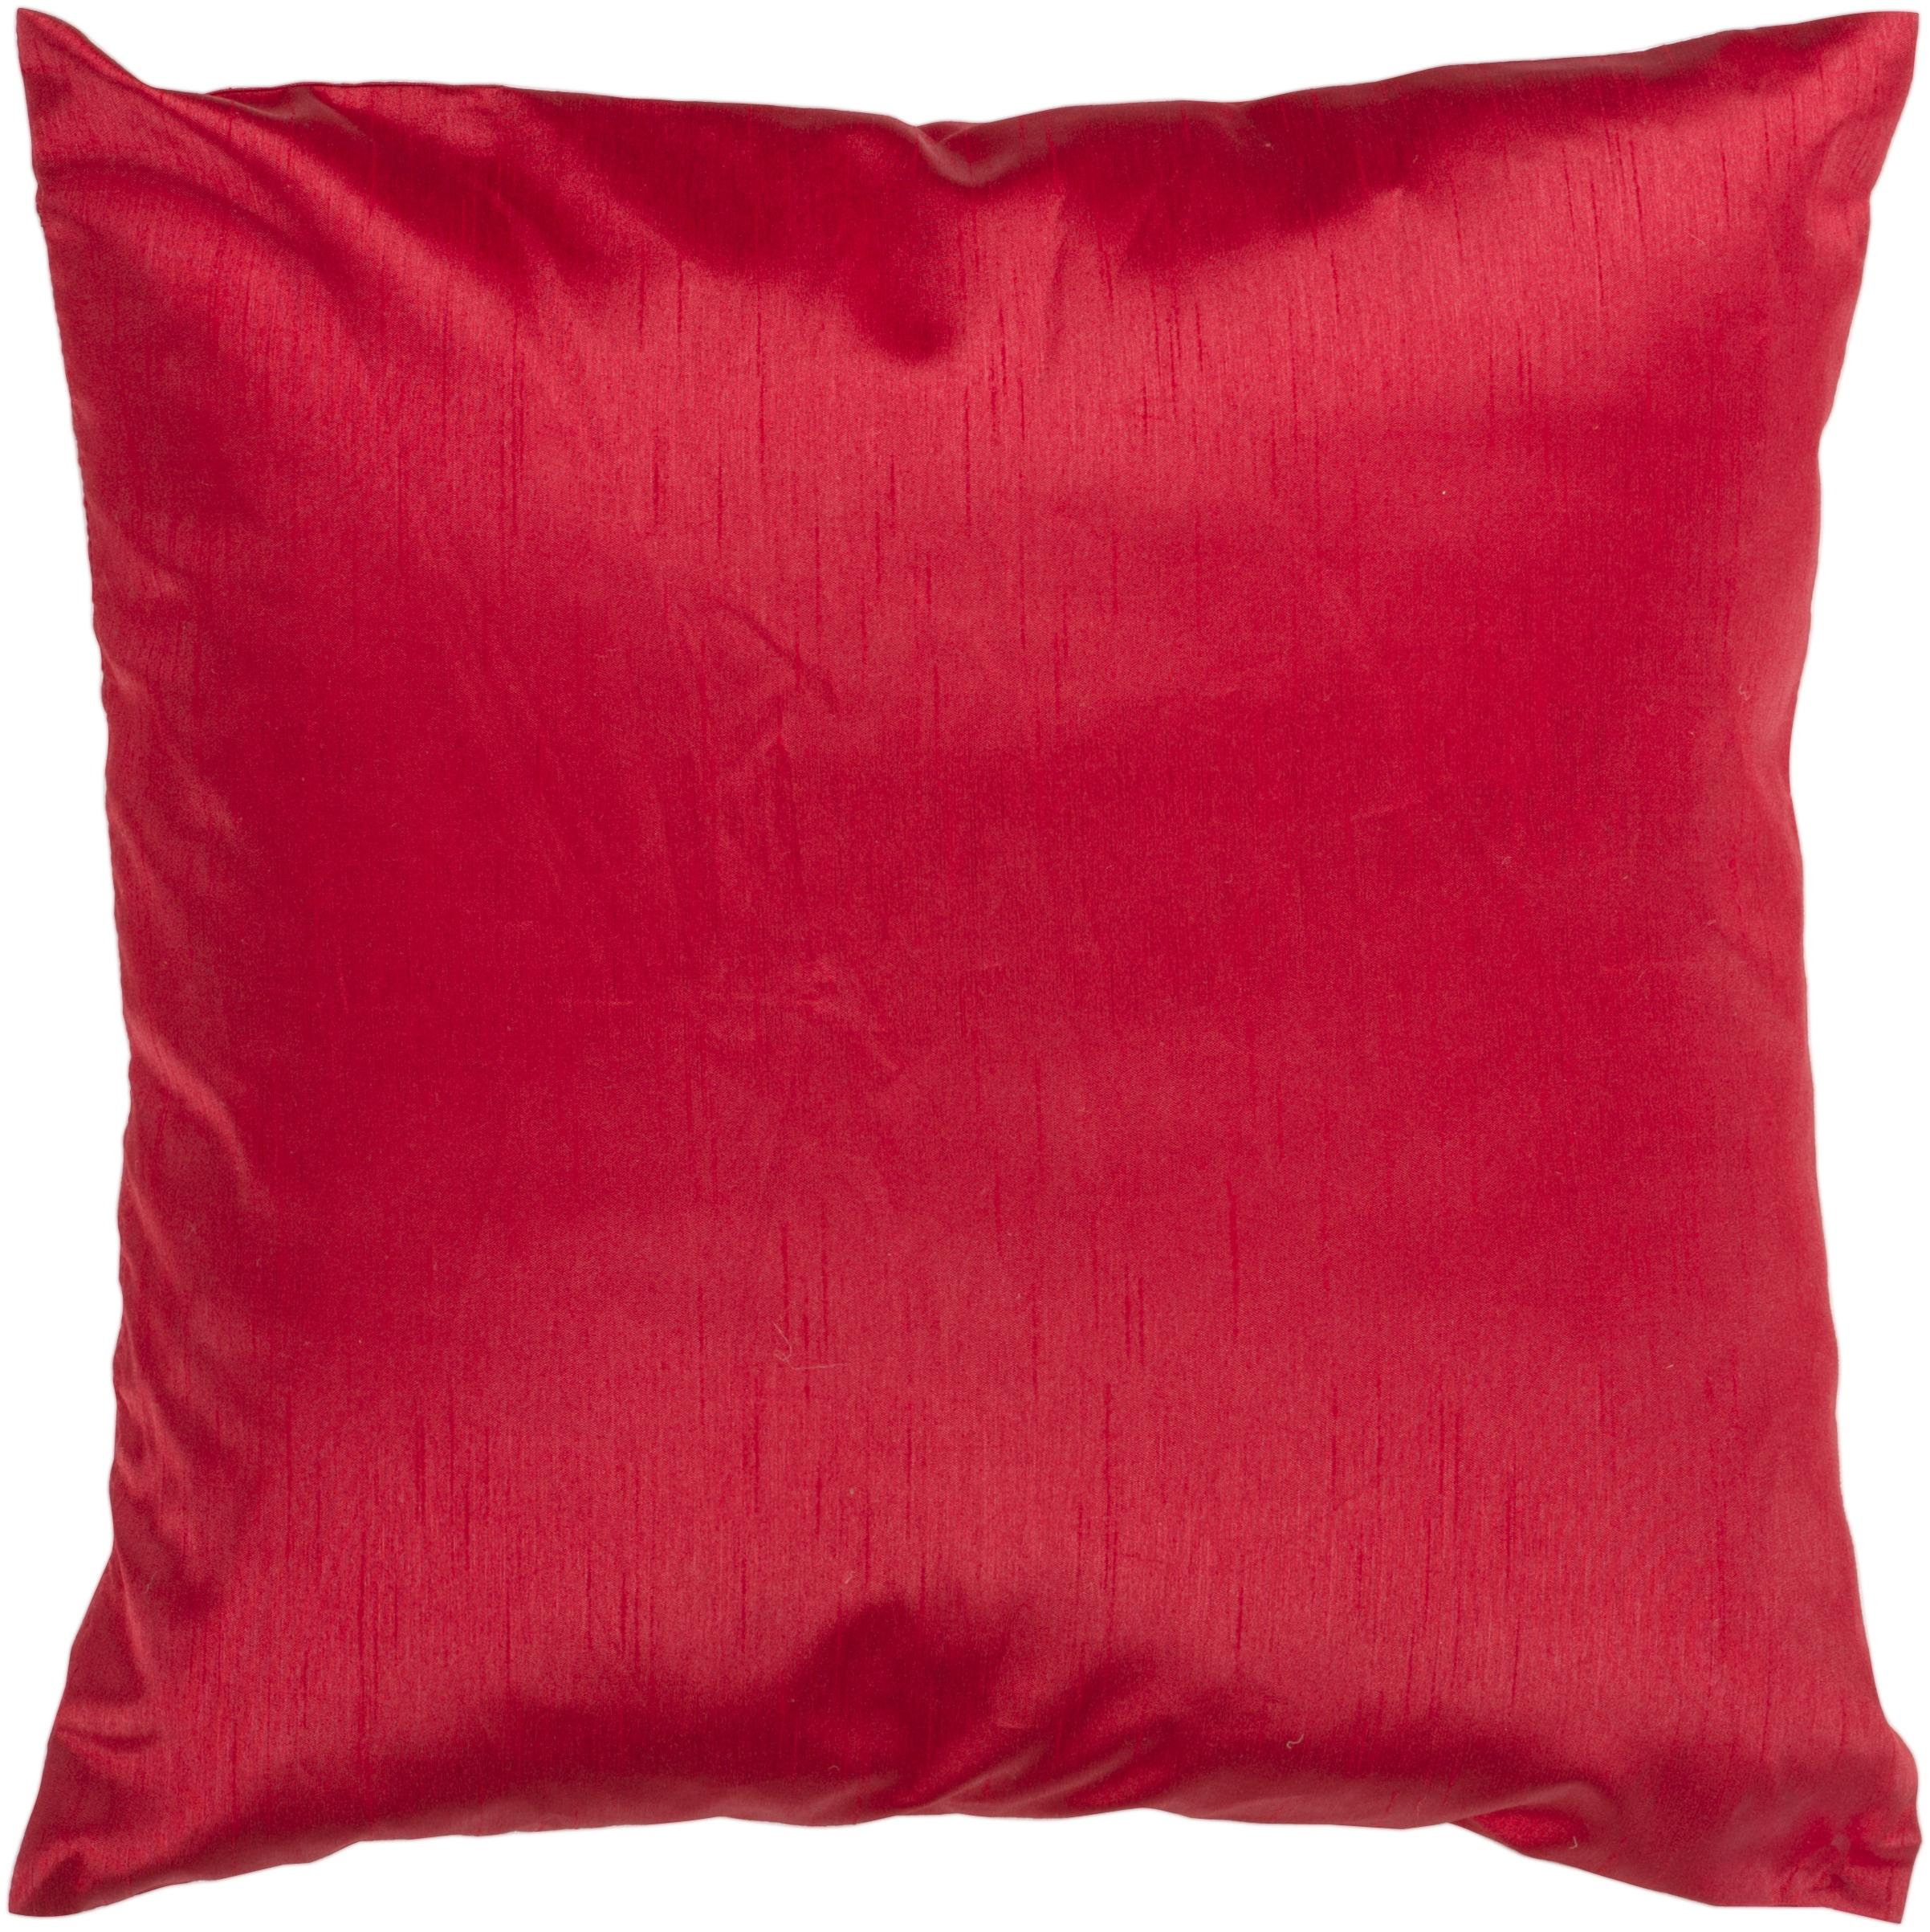 "Surya Pillows 18"" x 18"" Pillow - Item Number: HH035-1818P"